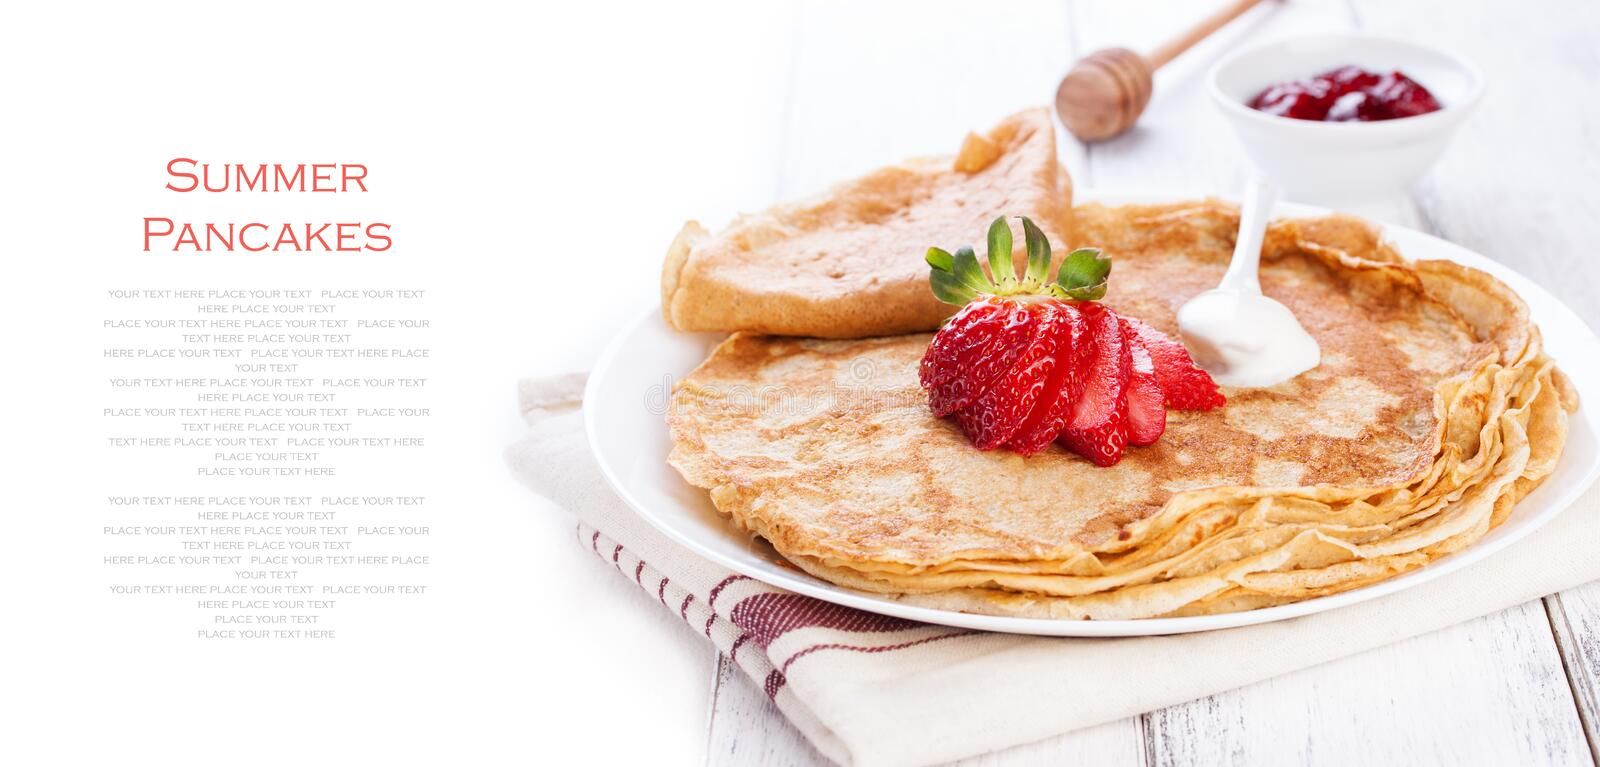 Staple of wheat golden yeast pancakes or crepes, traditional for Russian pancake week, with fresh strawberry on a wooden table stock image